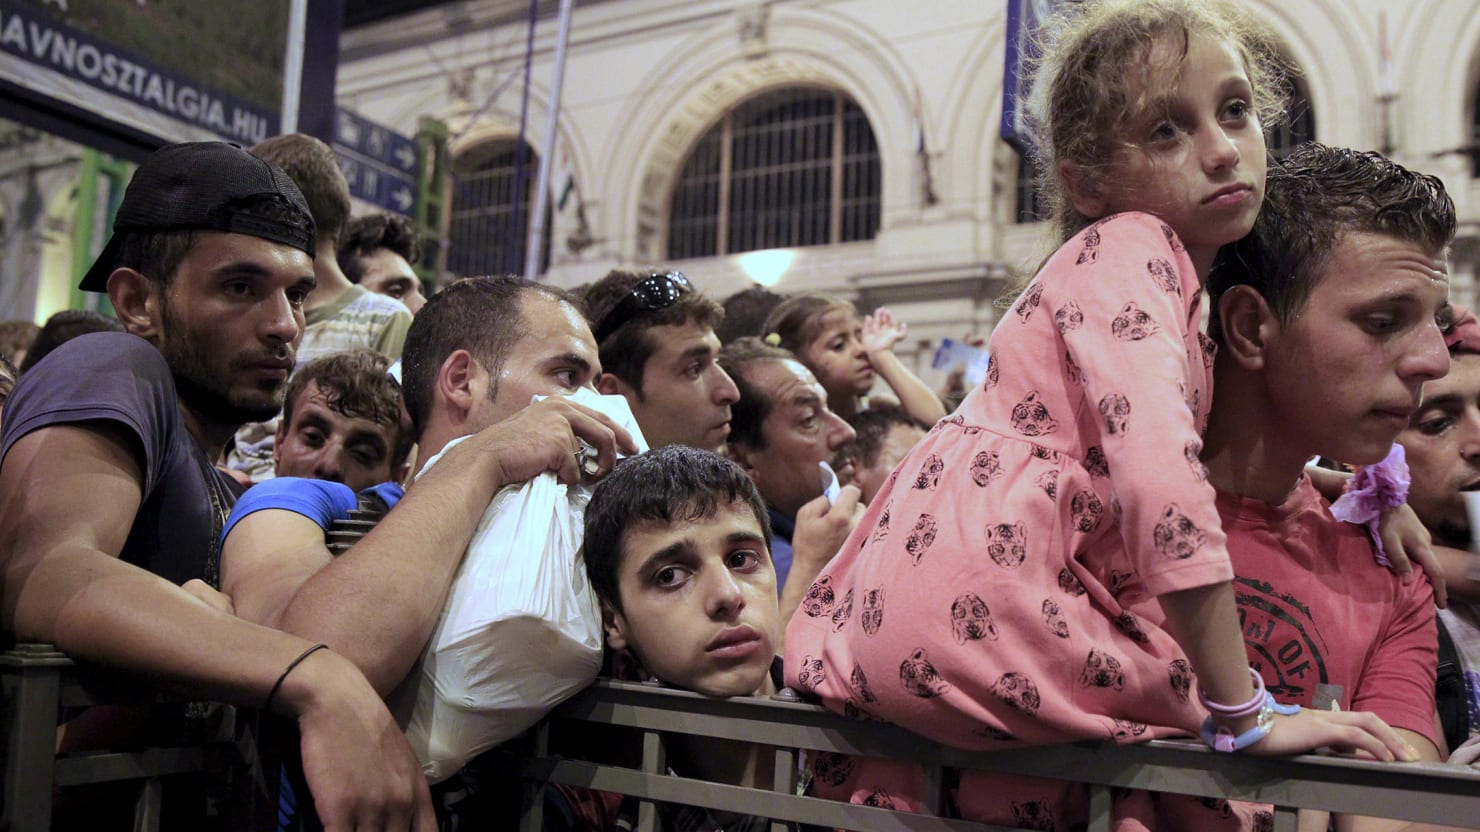 The Middle East Needs To Take Care Of Its Own Refugees